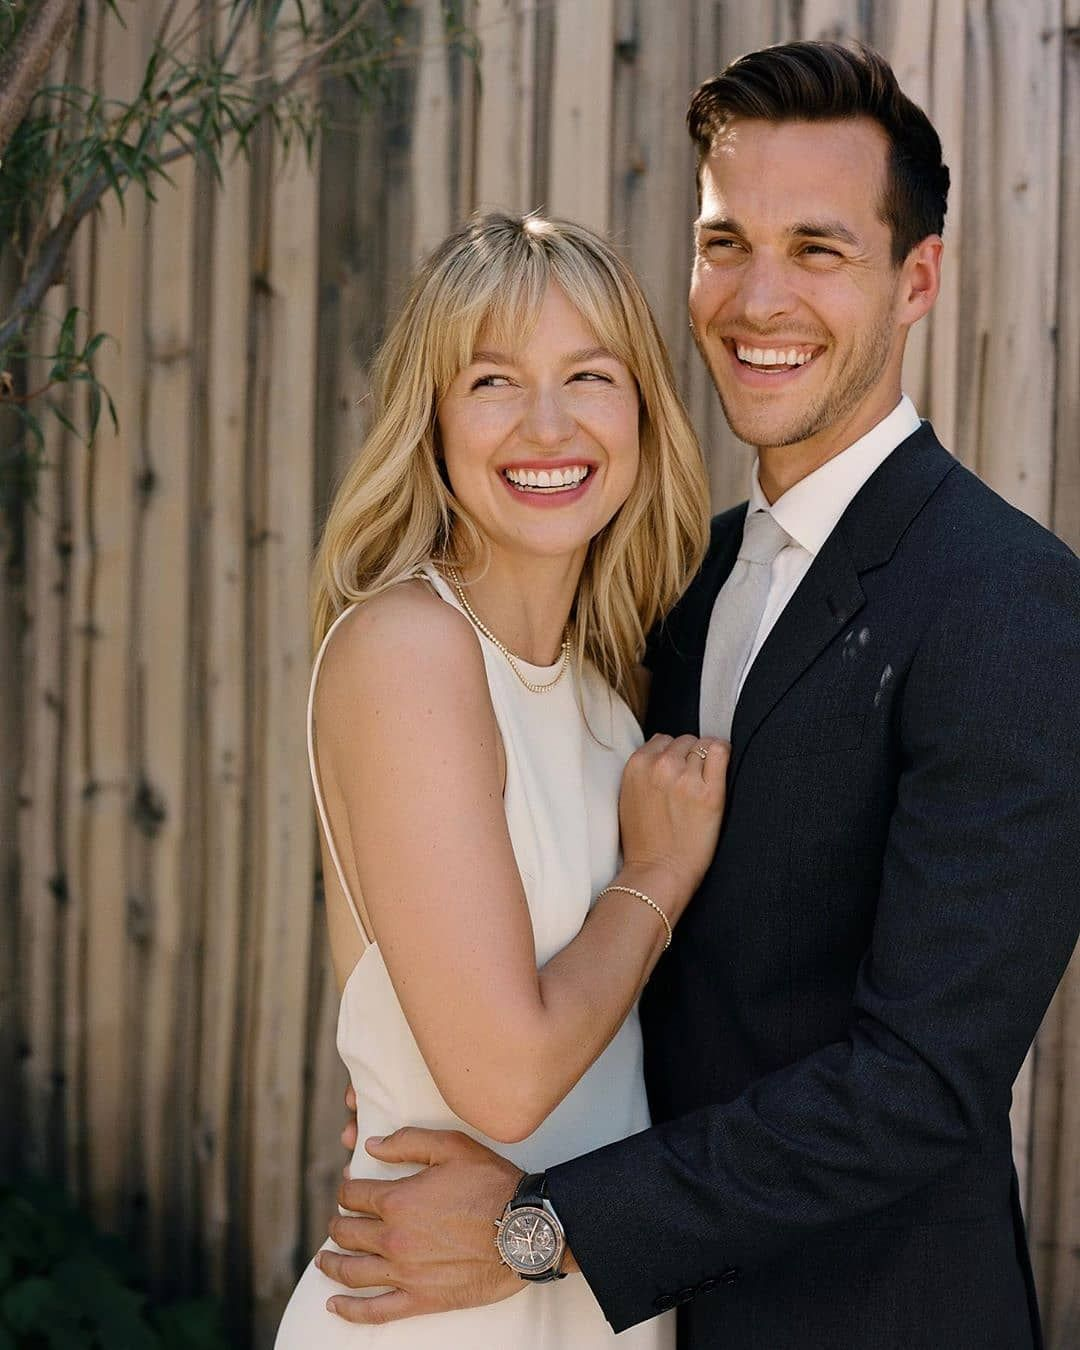 Melissa Chris Wood On Instagram They Look So Pure Happy Oh Lord I Sobbin Melissabenoist In 2020 Melissa Supergirl Melissa Benoist Wedding Chris Wood